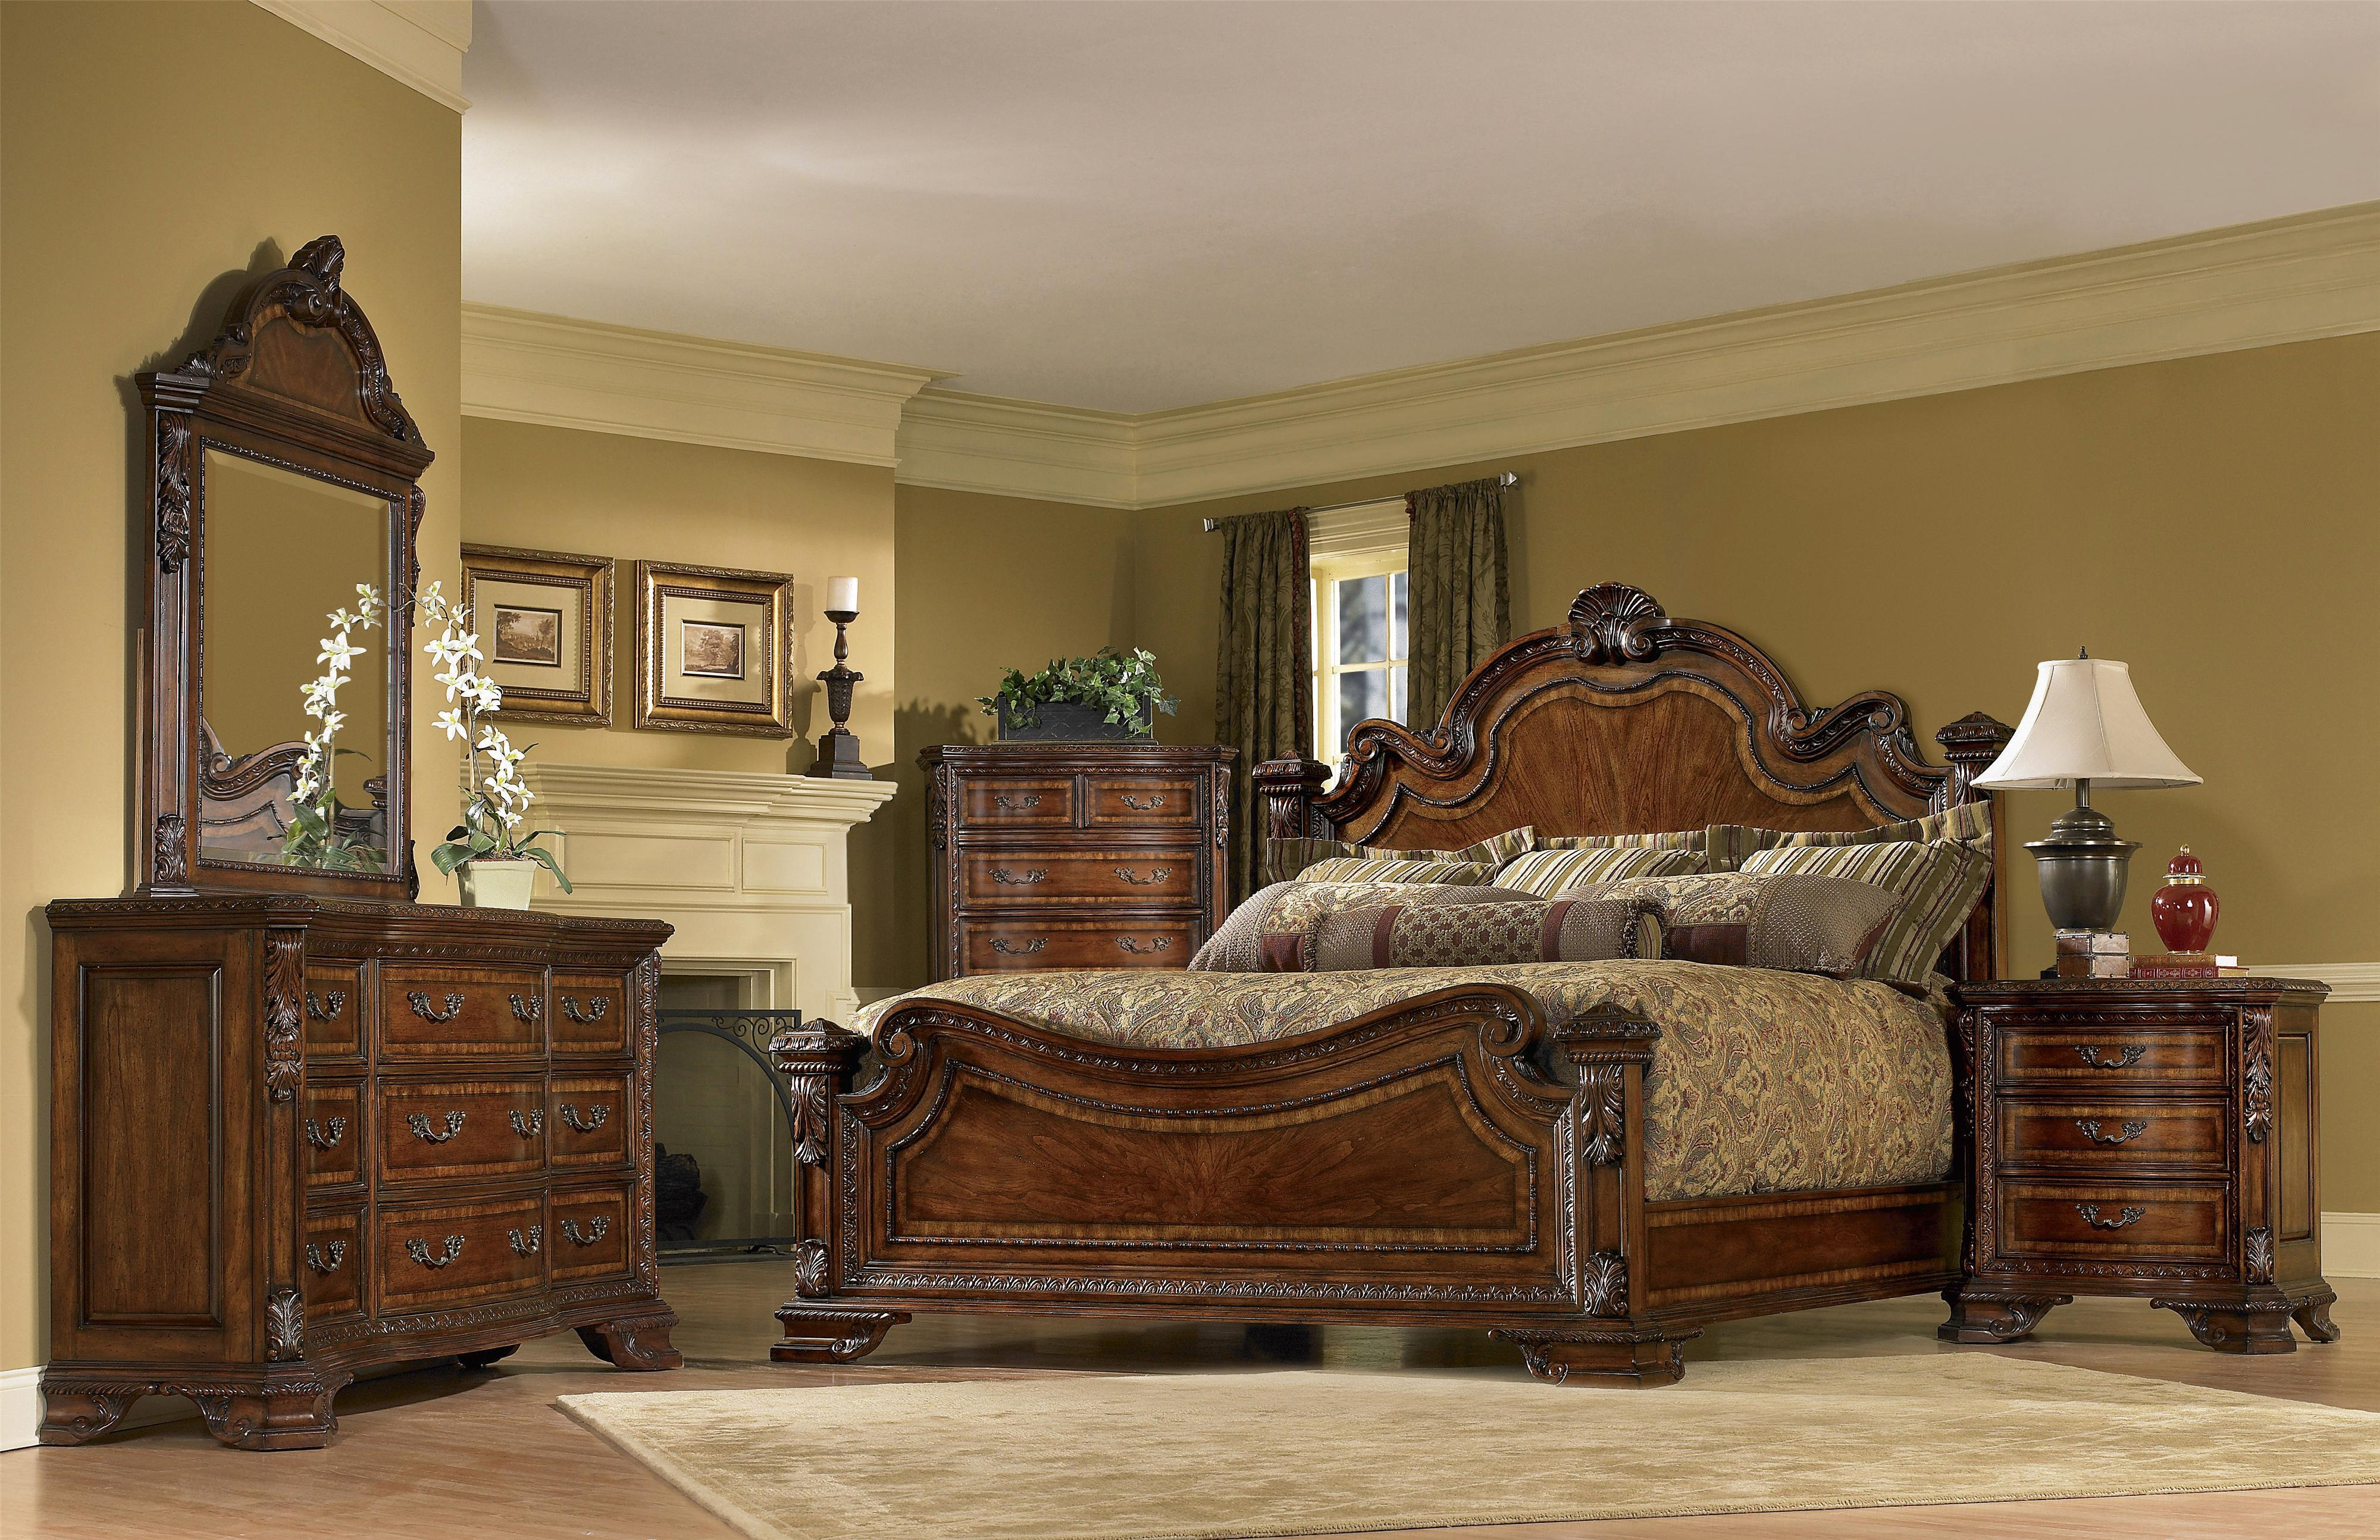 Belfort Signature Overture California King Bedroom Group - Item Number: 43 CK Bedroom Group